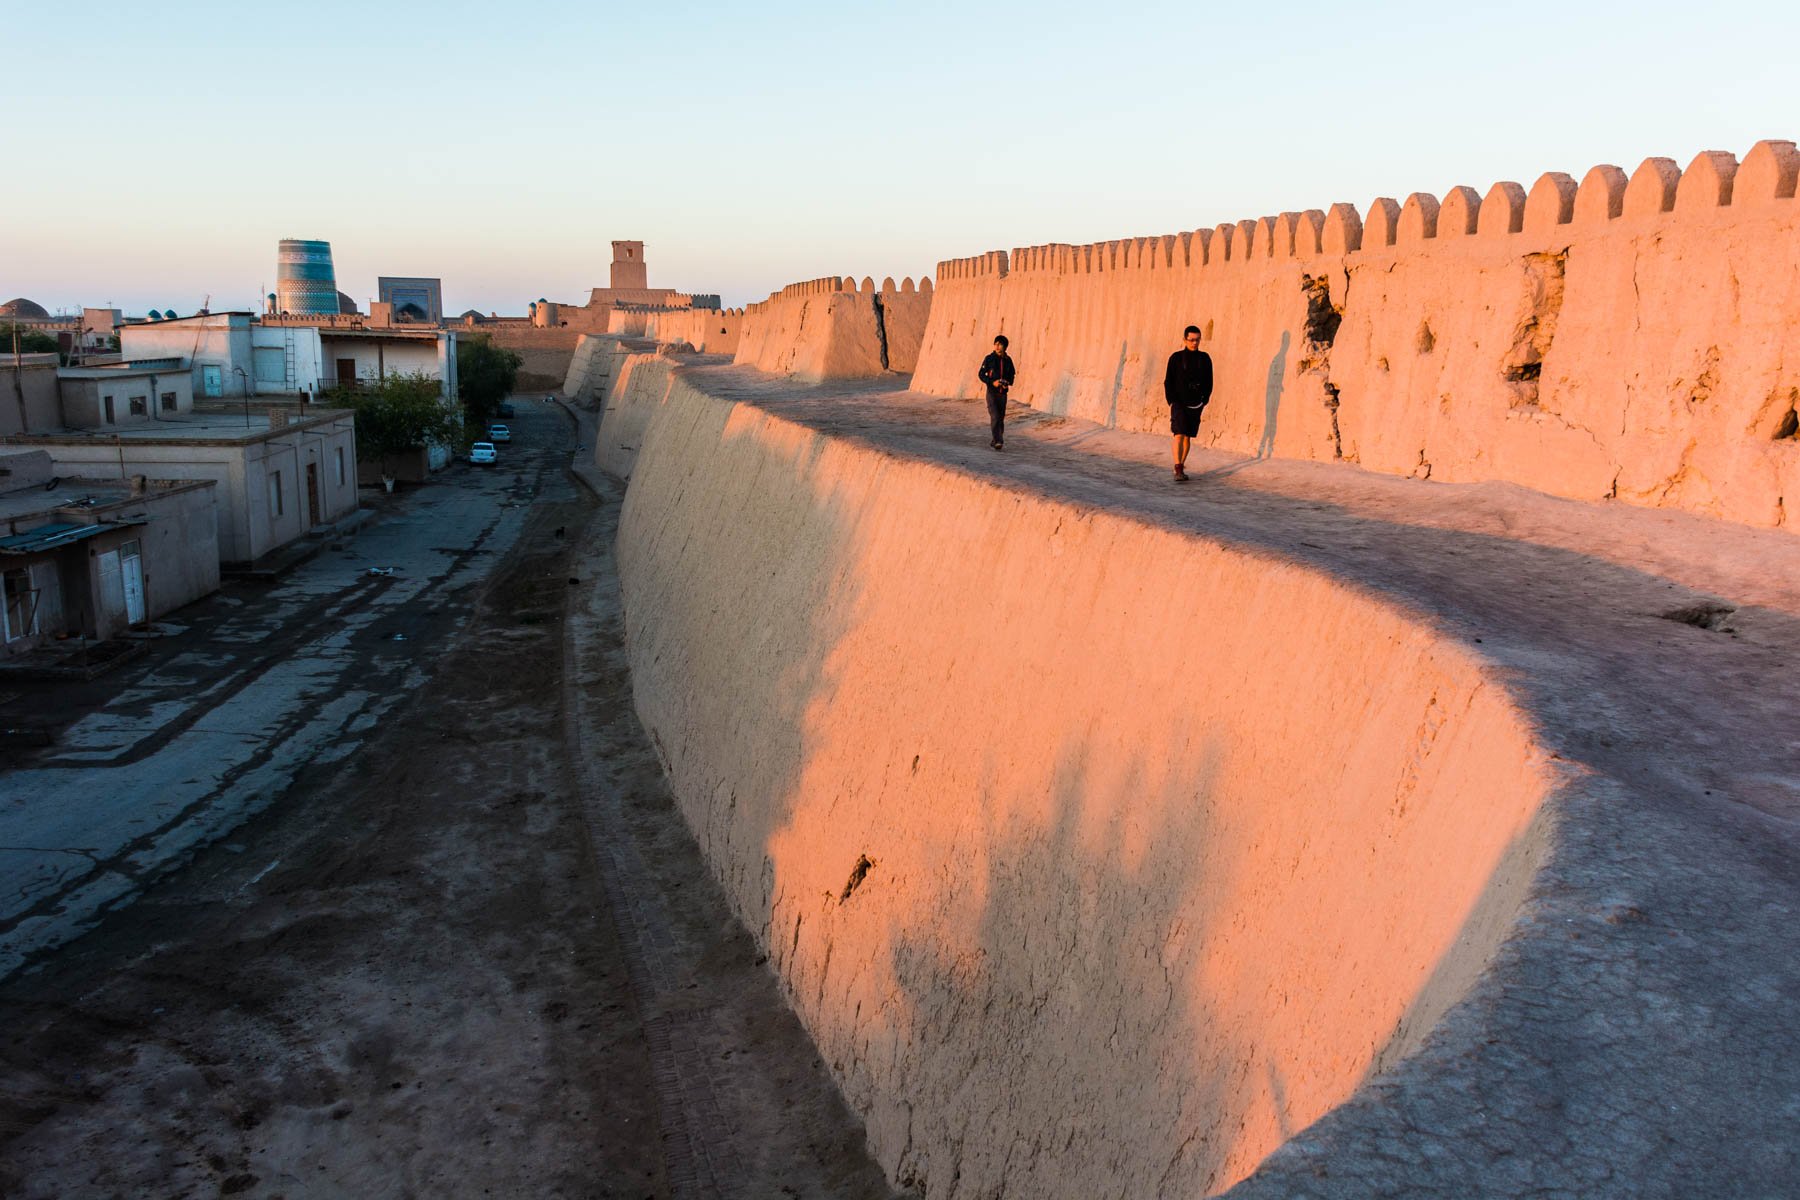 Boy walking on the walls of Khiva's old city during sunrise